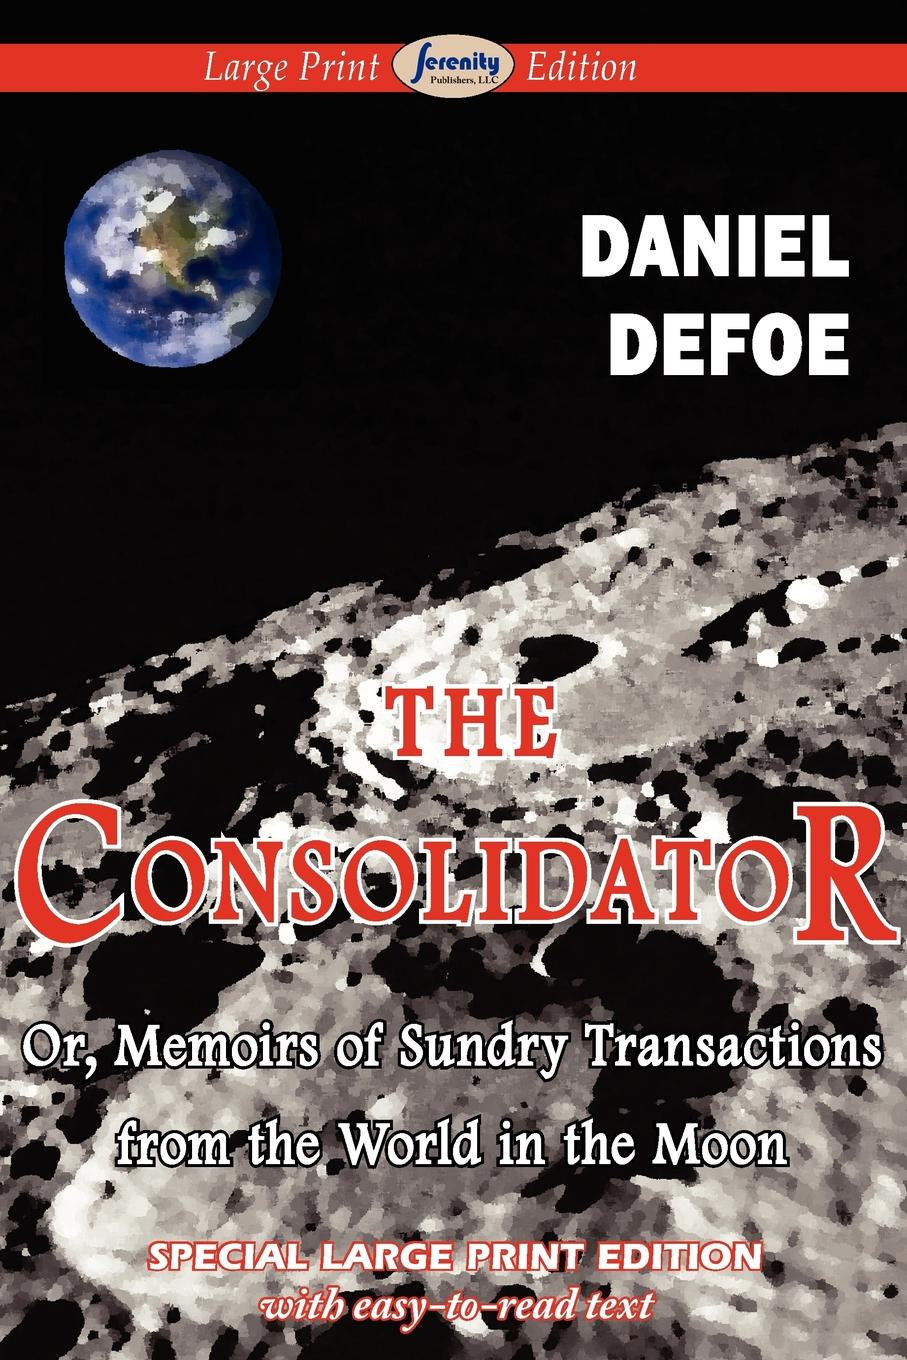 Daniel Defoe The Consolidator (Large Print Edition) r austin freeman the mystery of 31 new inn large print edition